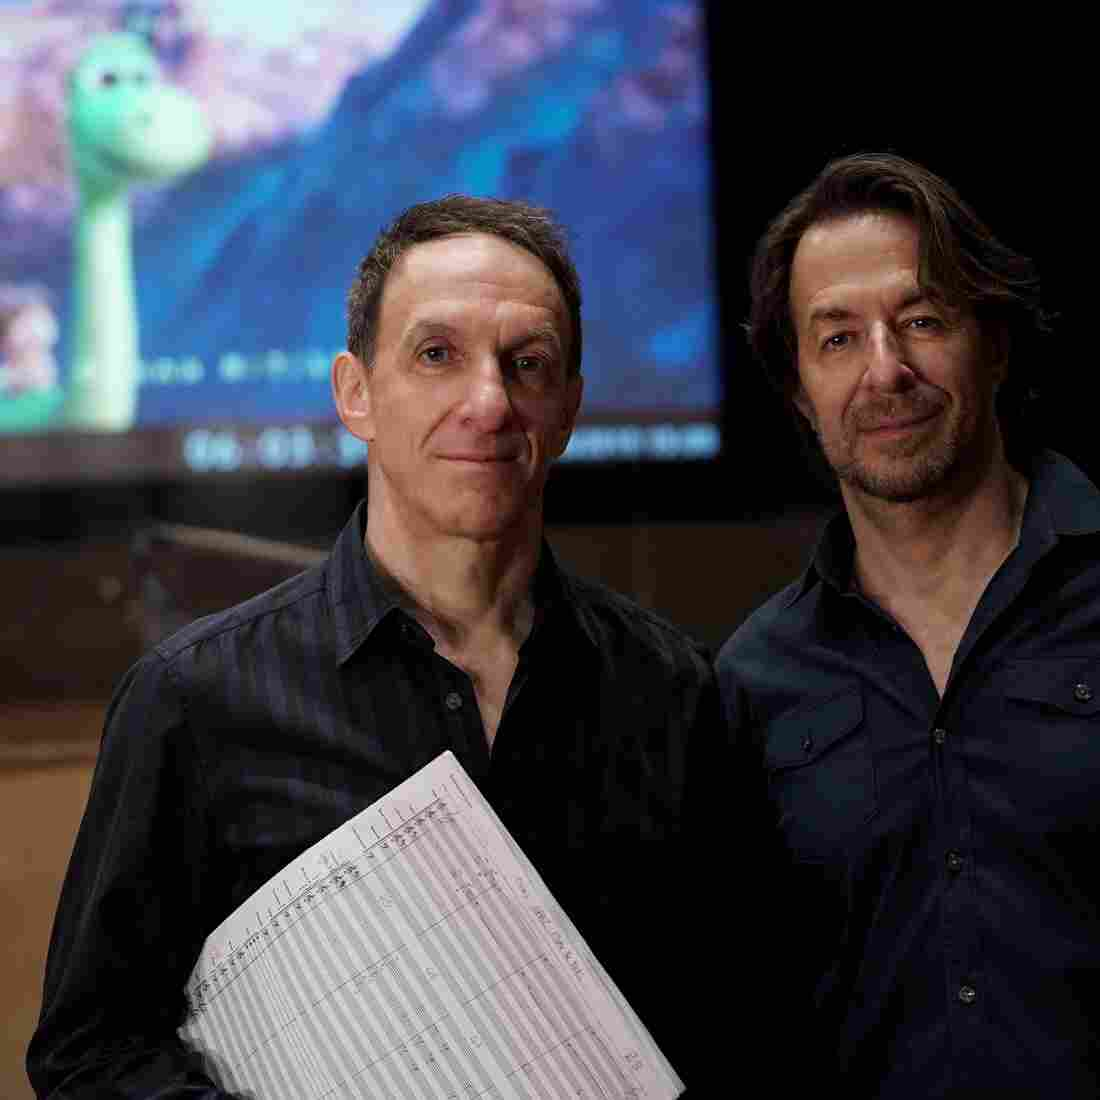 "Brothers Mychael and Jeff Danna composed the music for the new Pixar film The Good Dinosaur. ""The entire process of making a music score is additive, so every little detail becomes part of the whole,"" Mychael says."